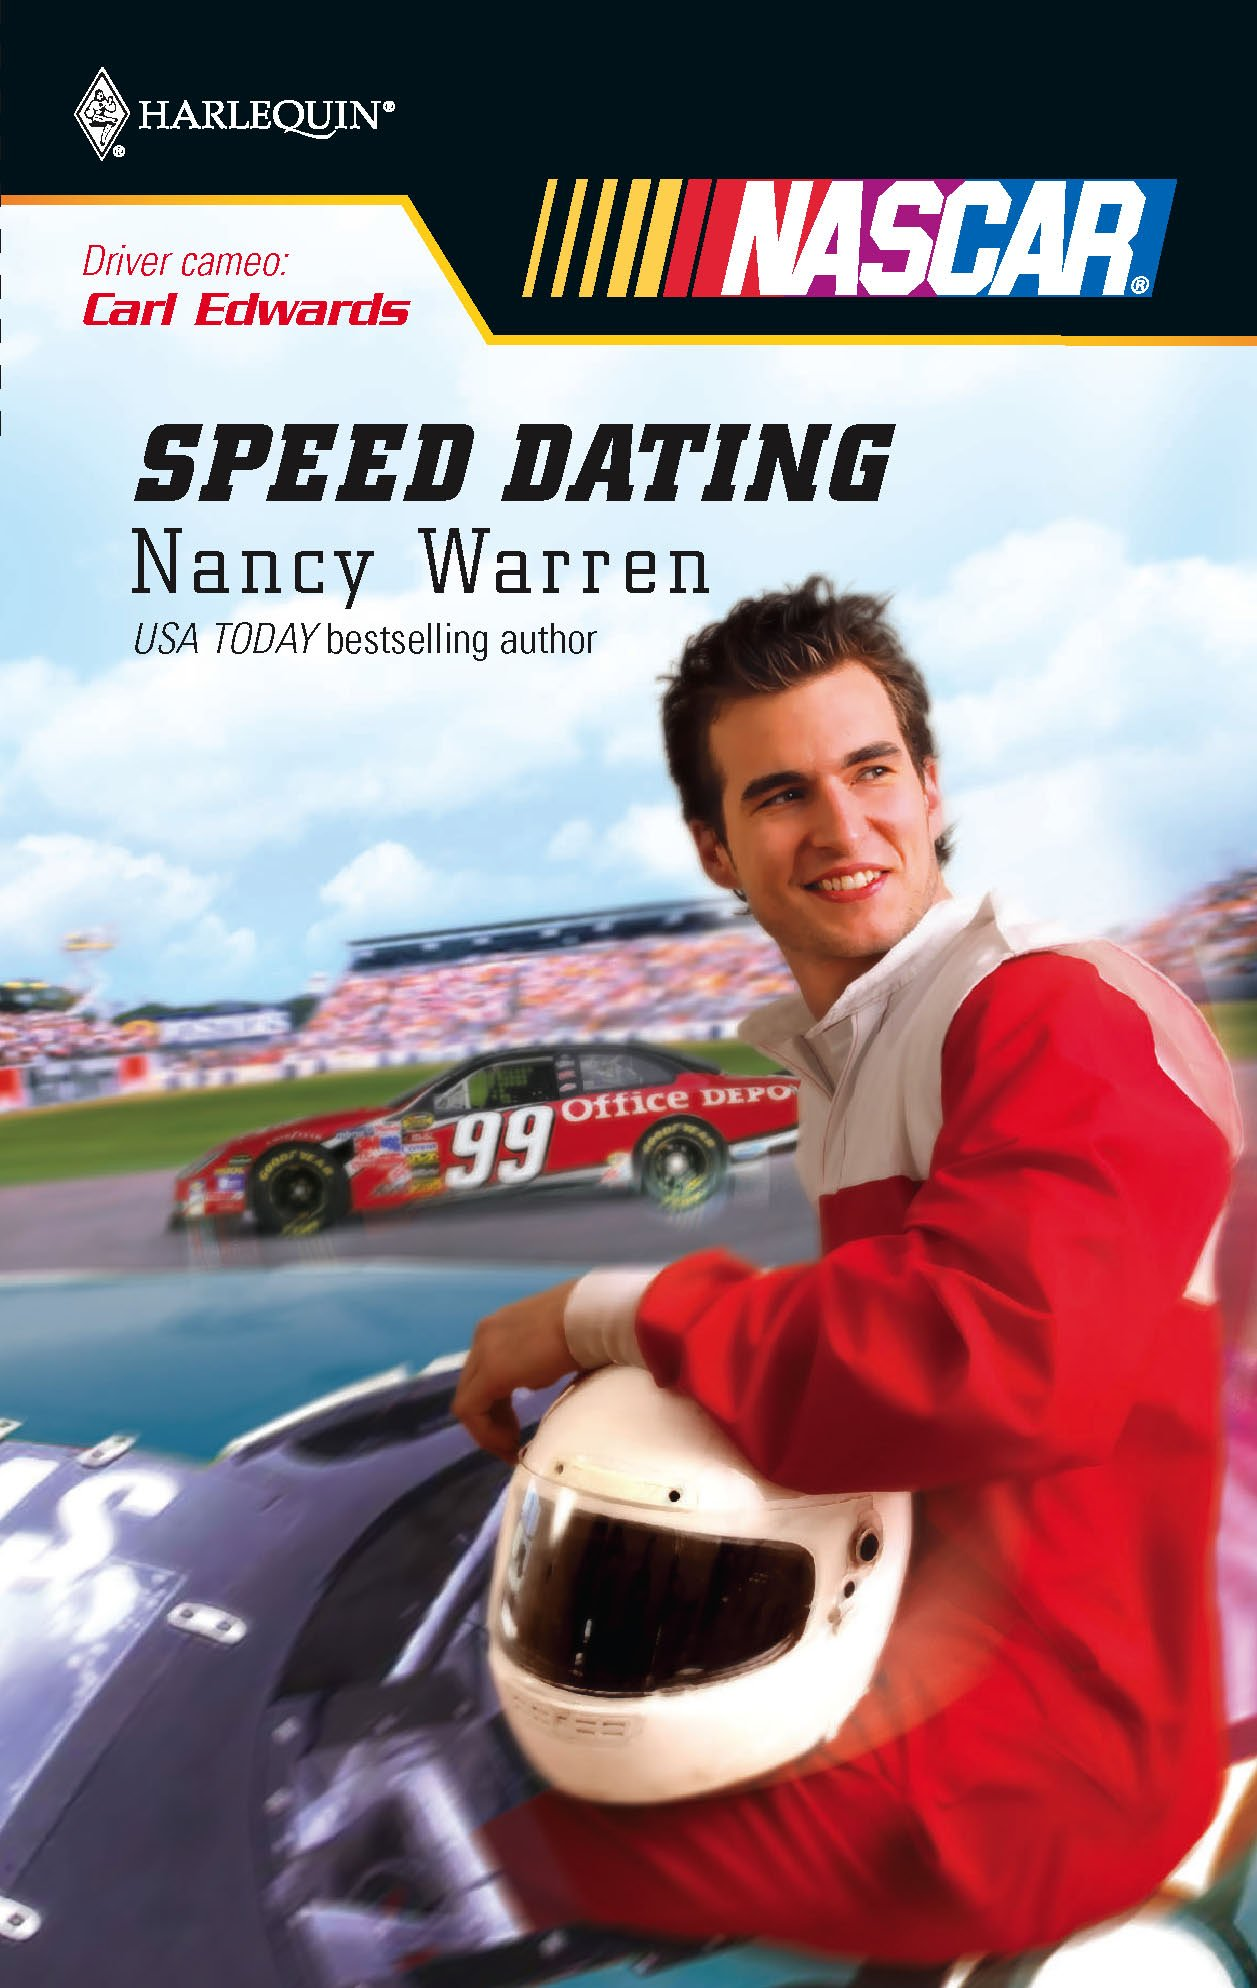 Speed dating nancy warren free download